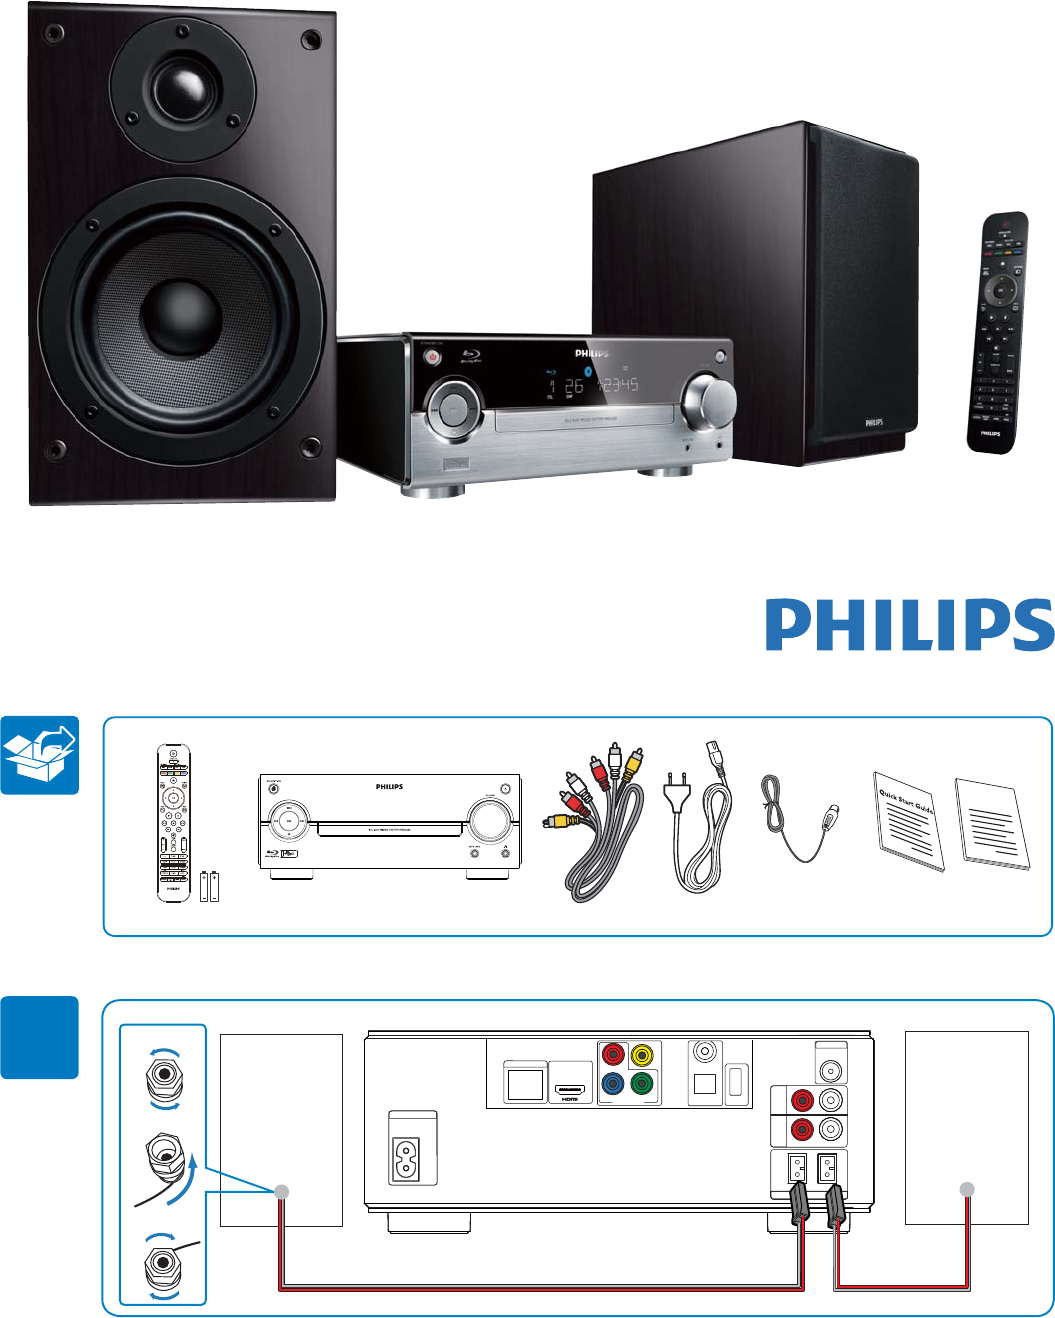 philips blu ray player mbd3000 user guide. Black Bedroom Furniture Sets. Home Design Ideas